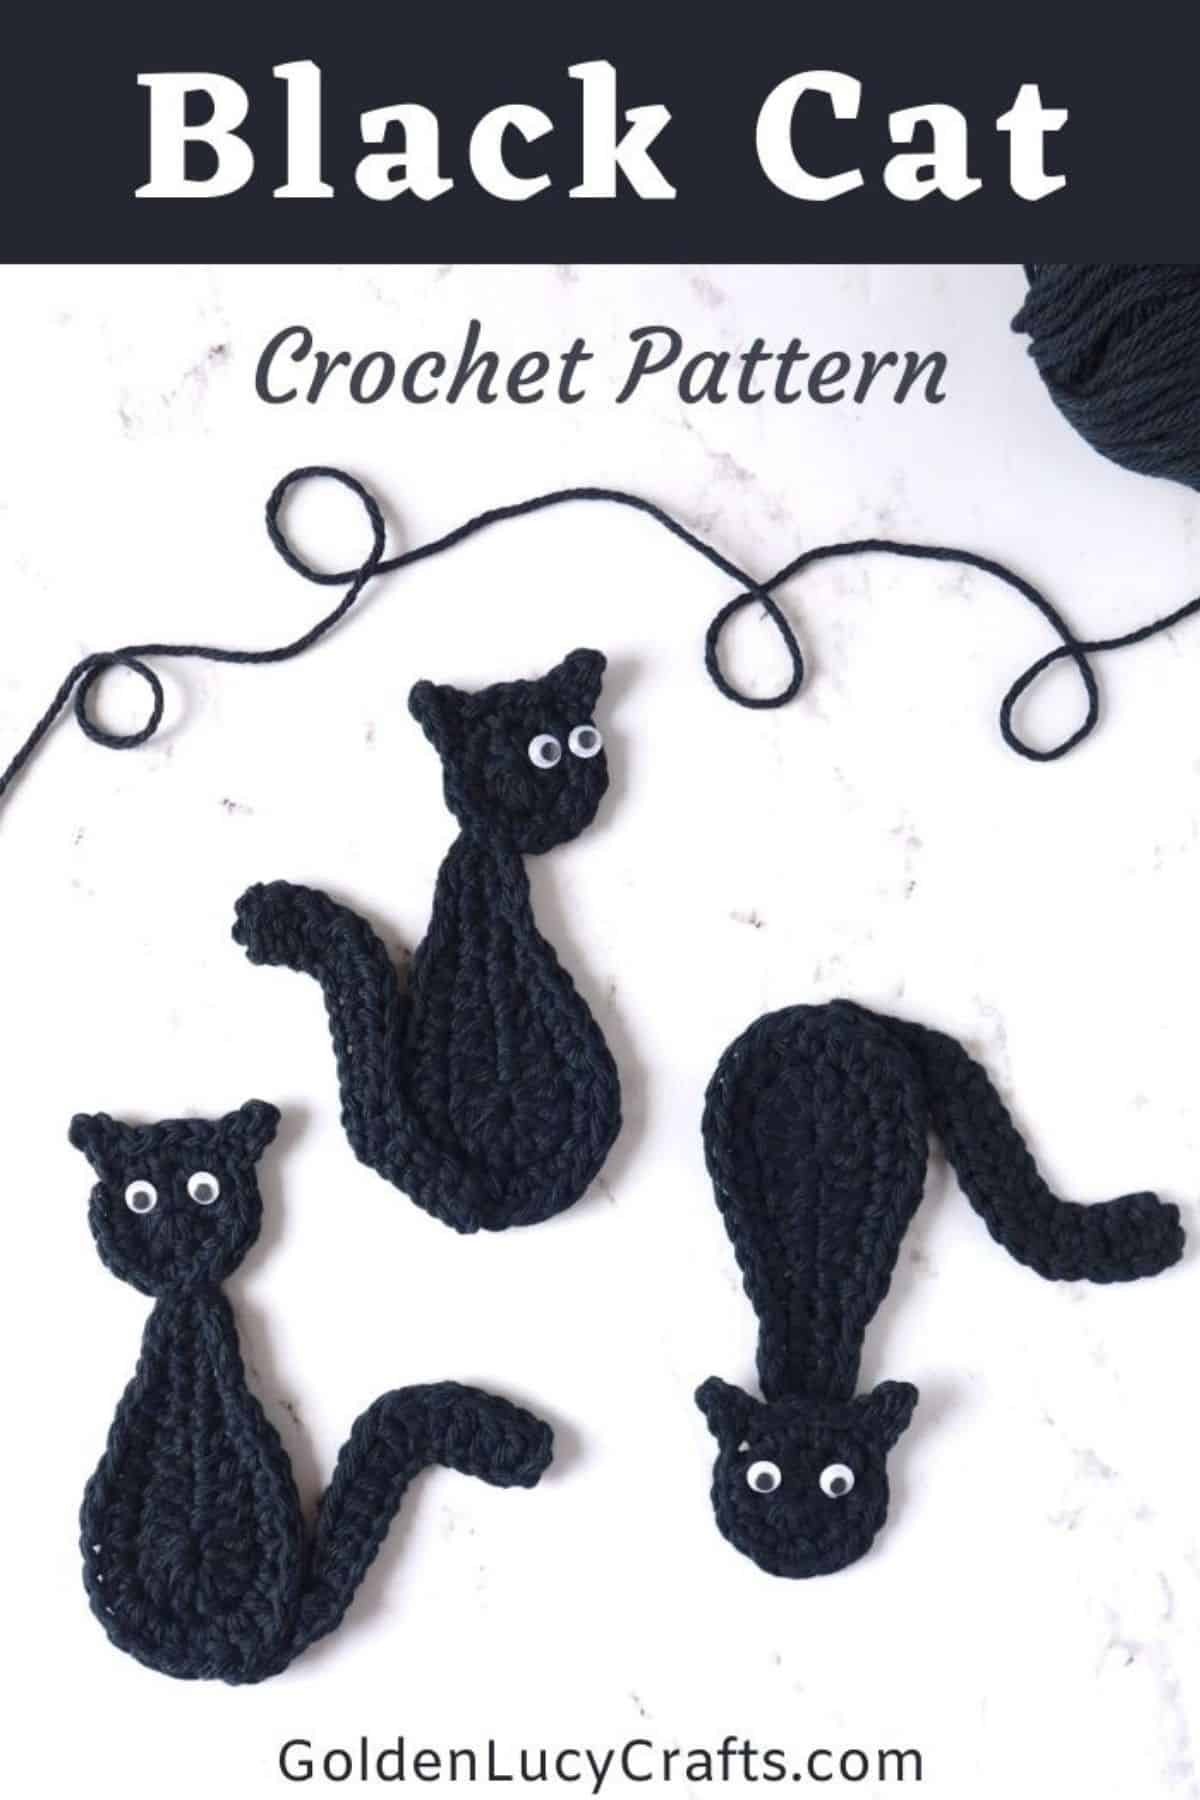 Three crocheted black cats appliques.